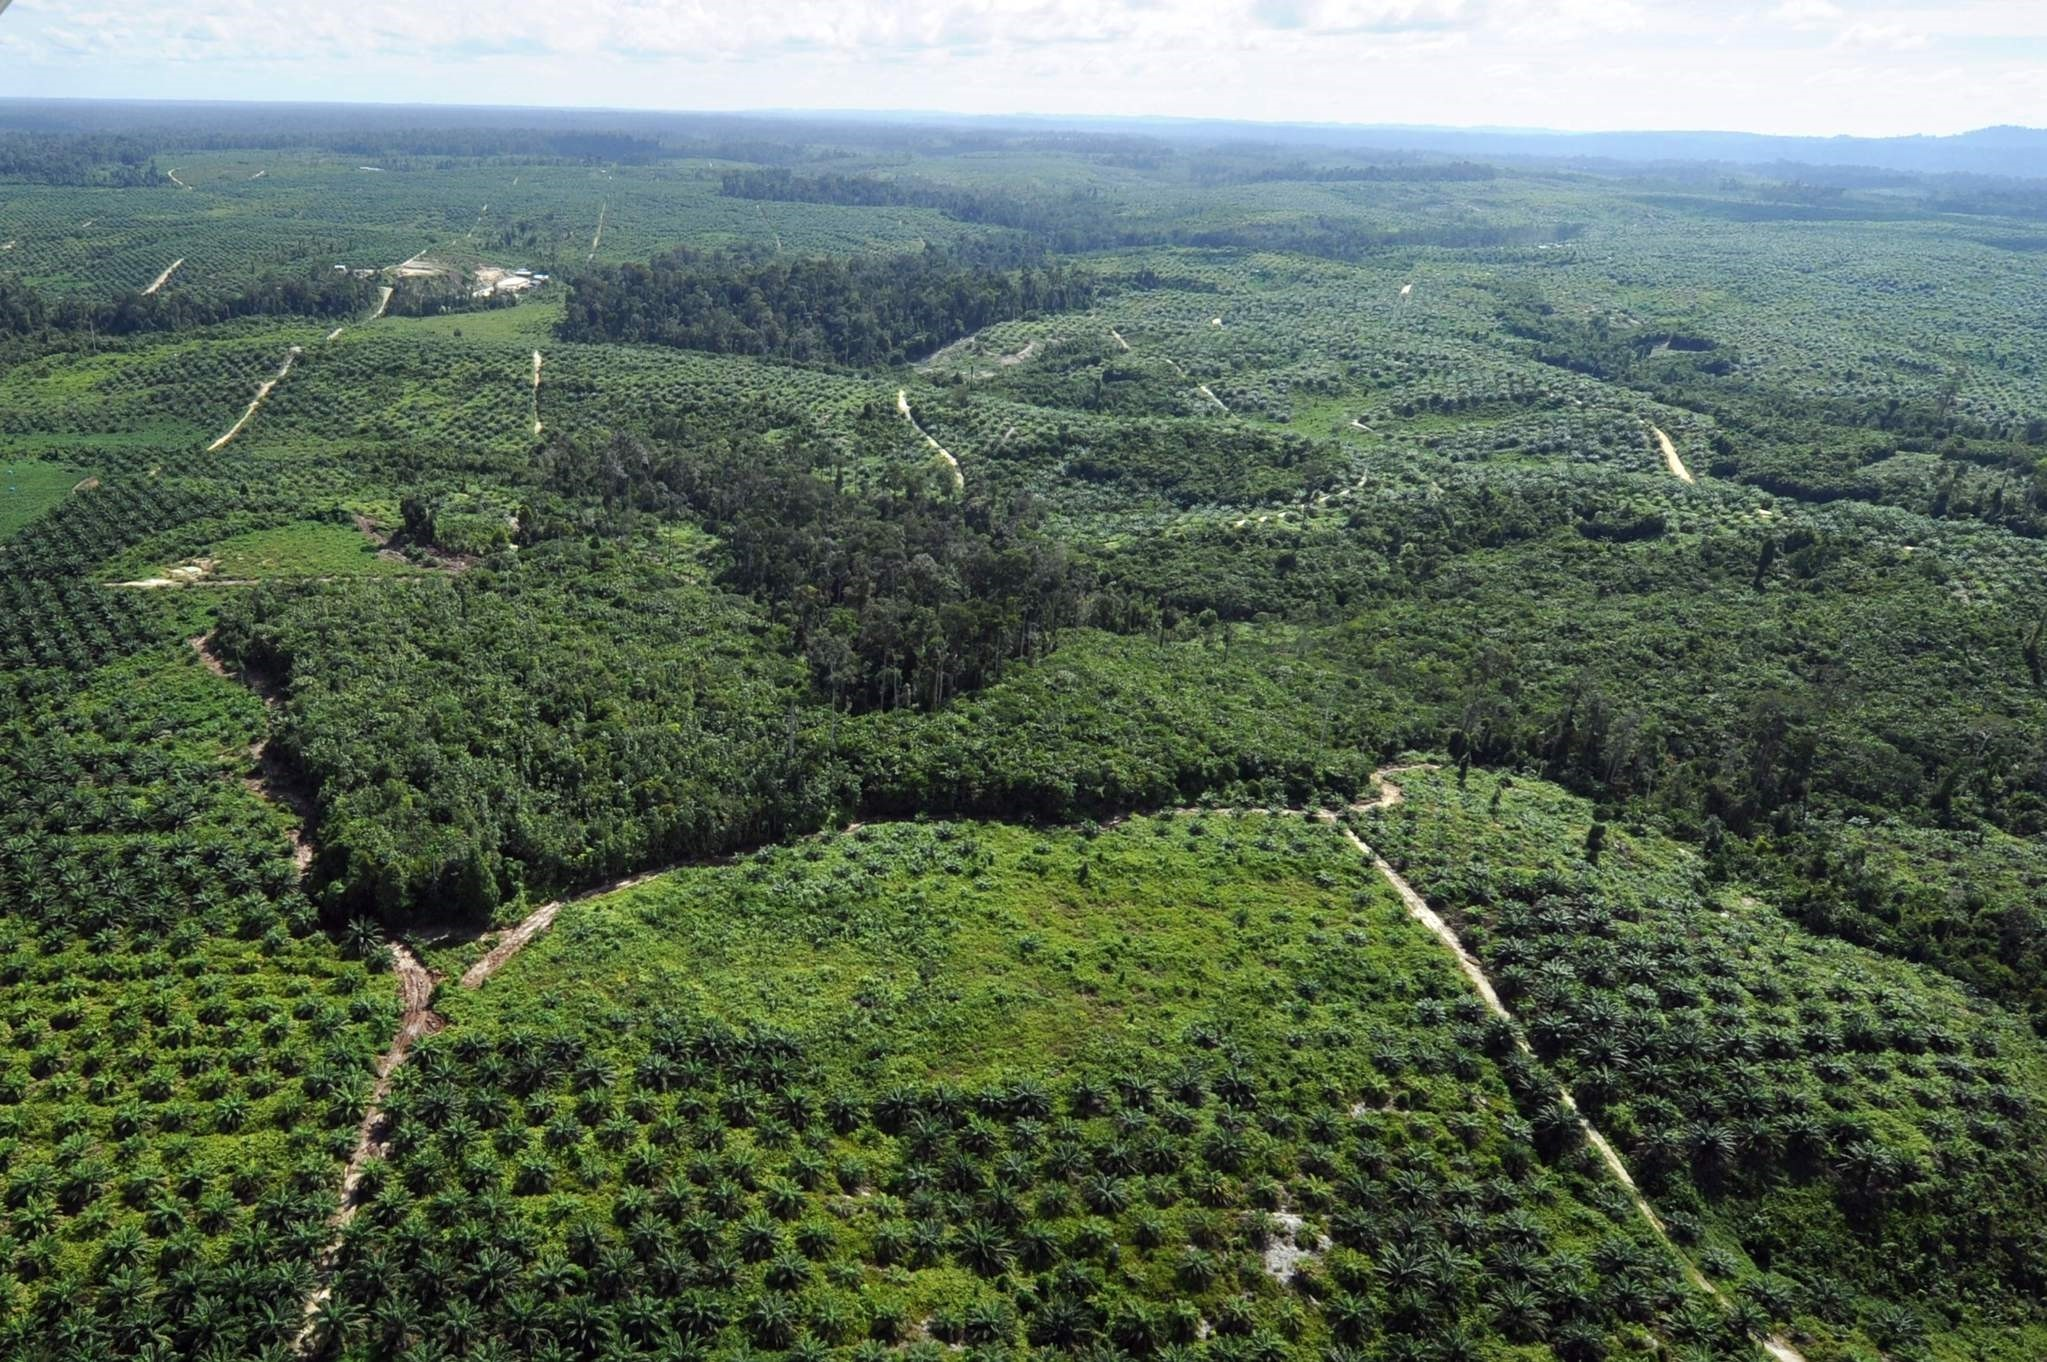 This file picture taken on June 7, 2012 shows a palm oil plantation that has been carved out from a forest in central Kalimantan province in Indonesia's Borneo island. (AFP Photo)